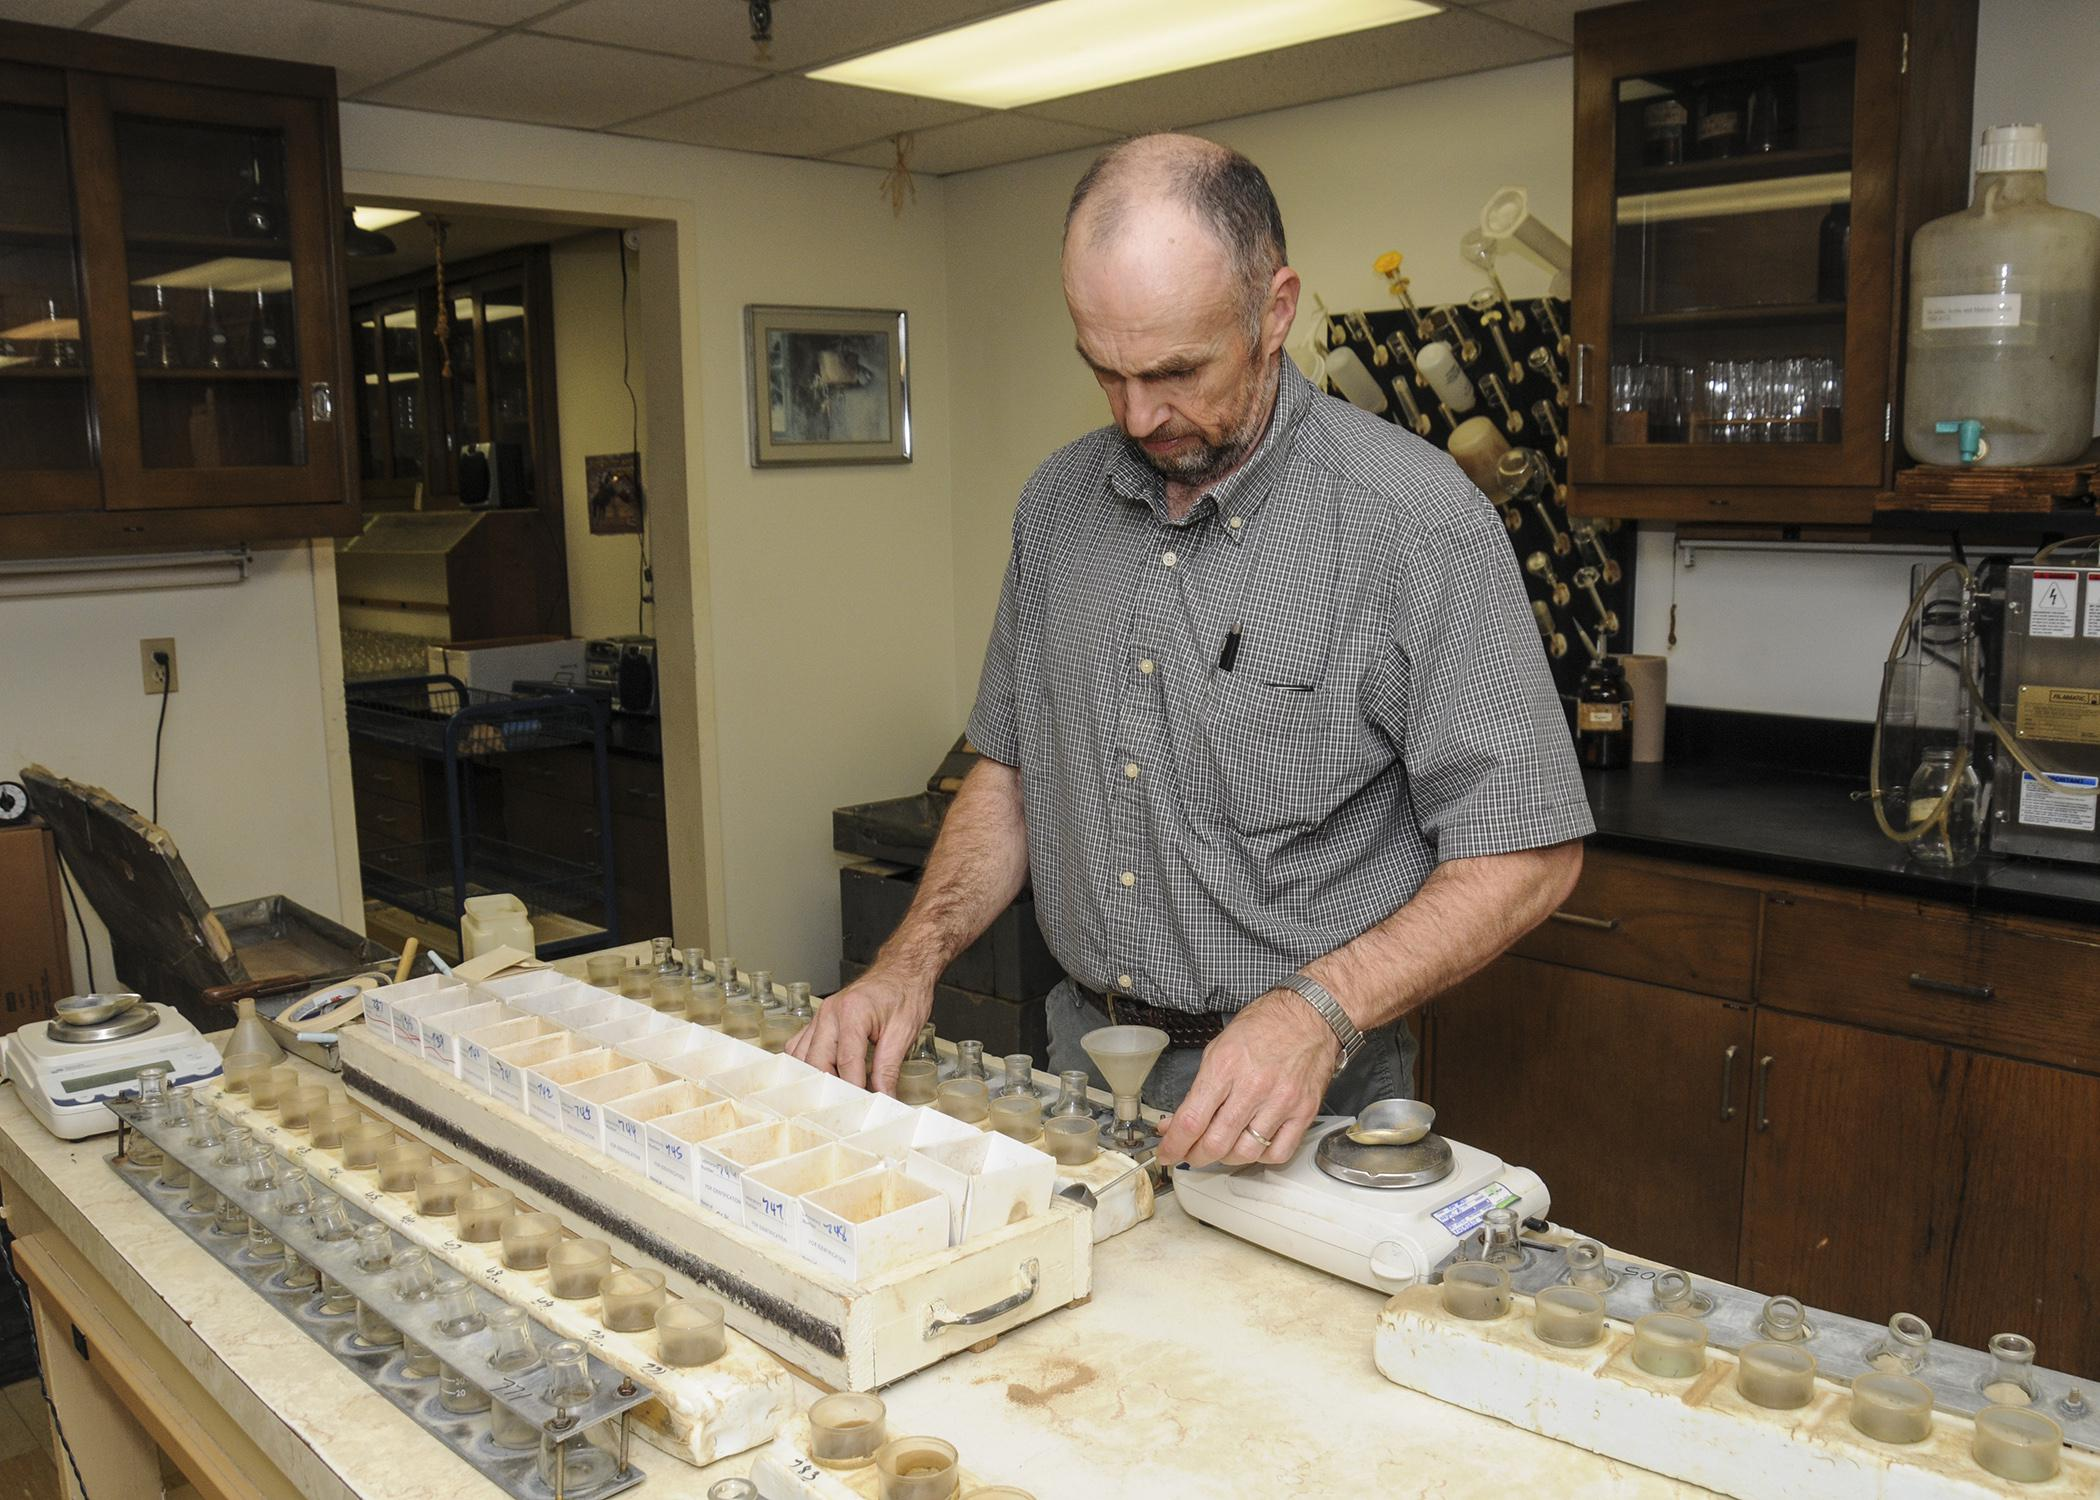 Mississippi State University Extension Service agronomy specialist Keith Crouse sorts through routine samples on April 10, 2013, in the MSU Soil Testing and Plant Analysis Lab, where every day is Earth Day, not just April 22. (Photo by MSU Ag Communications/Scott Corey)